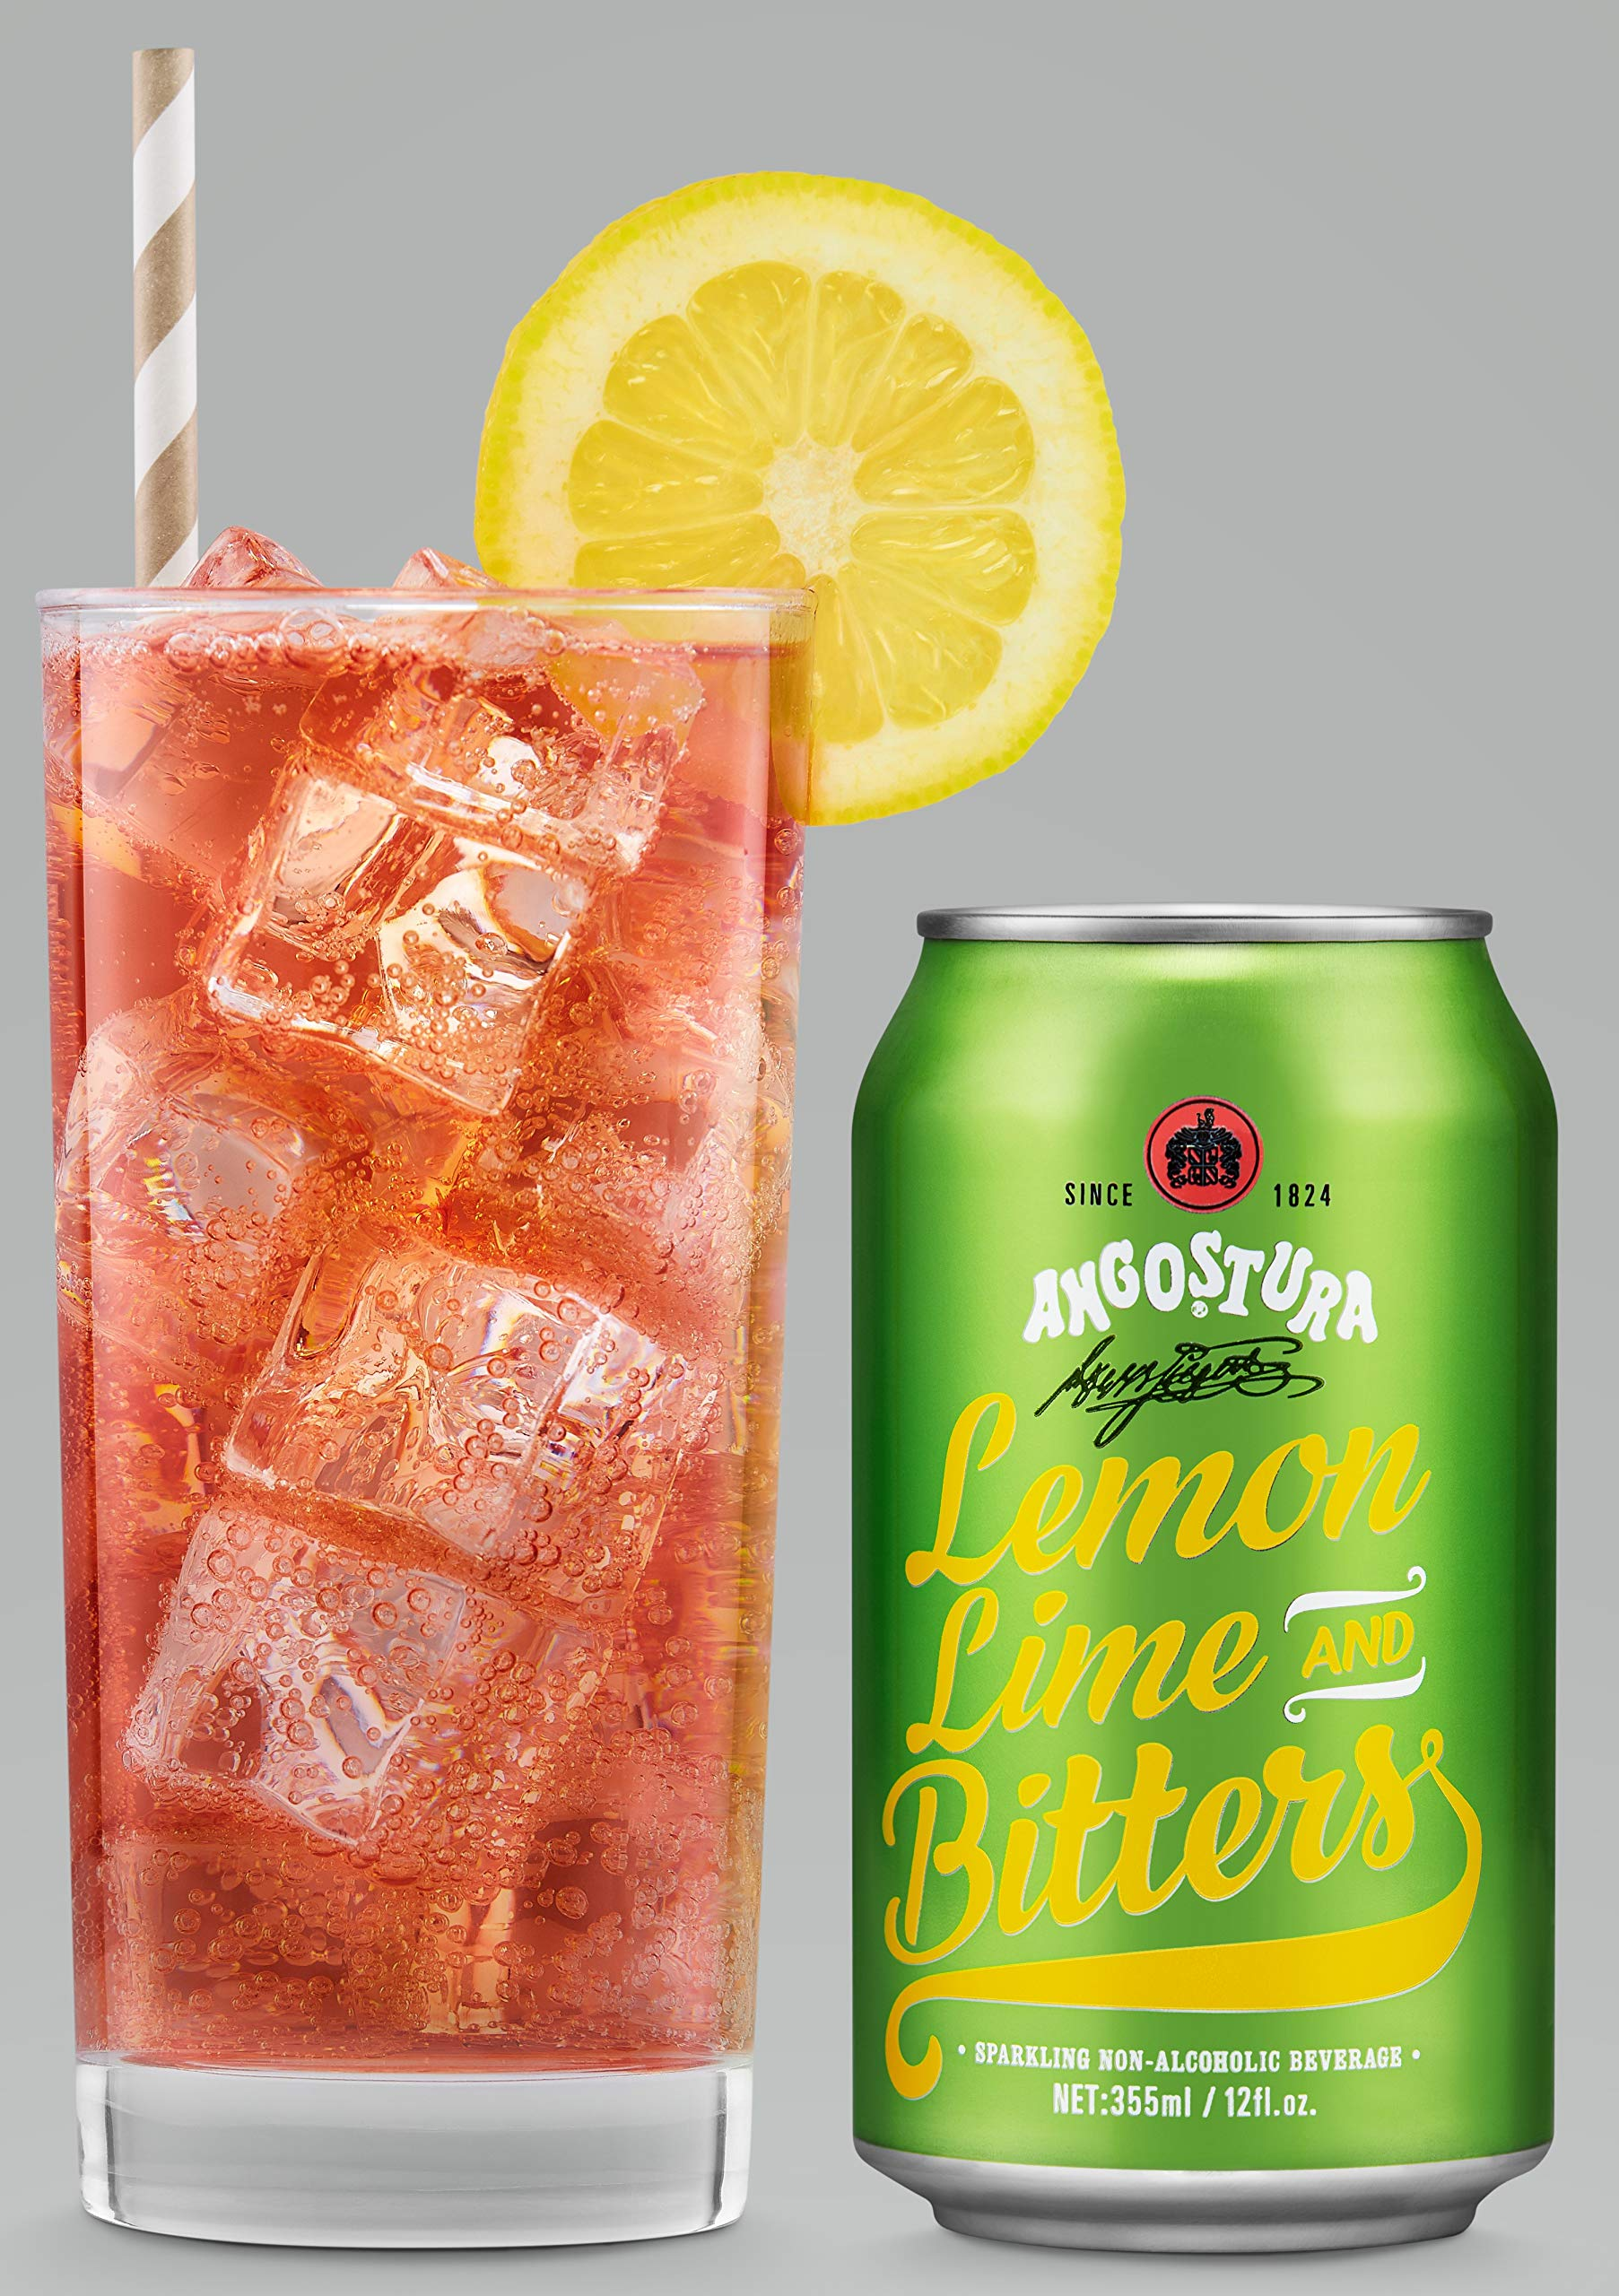 Angostura Lemon, Lime & Bitters, Non-Alcoholic Soda Cocktail Mixer, 12 fl oz Cans, 24 Pack